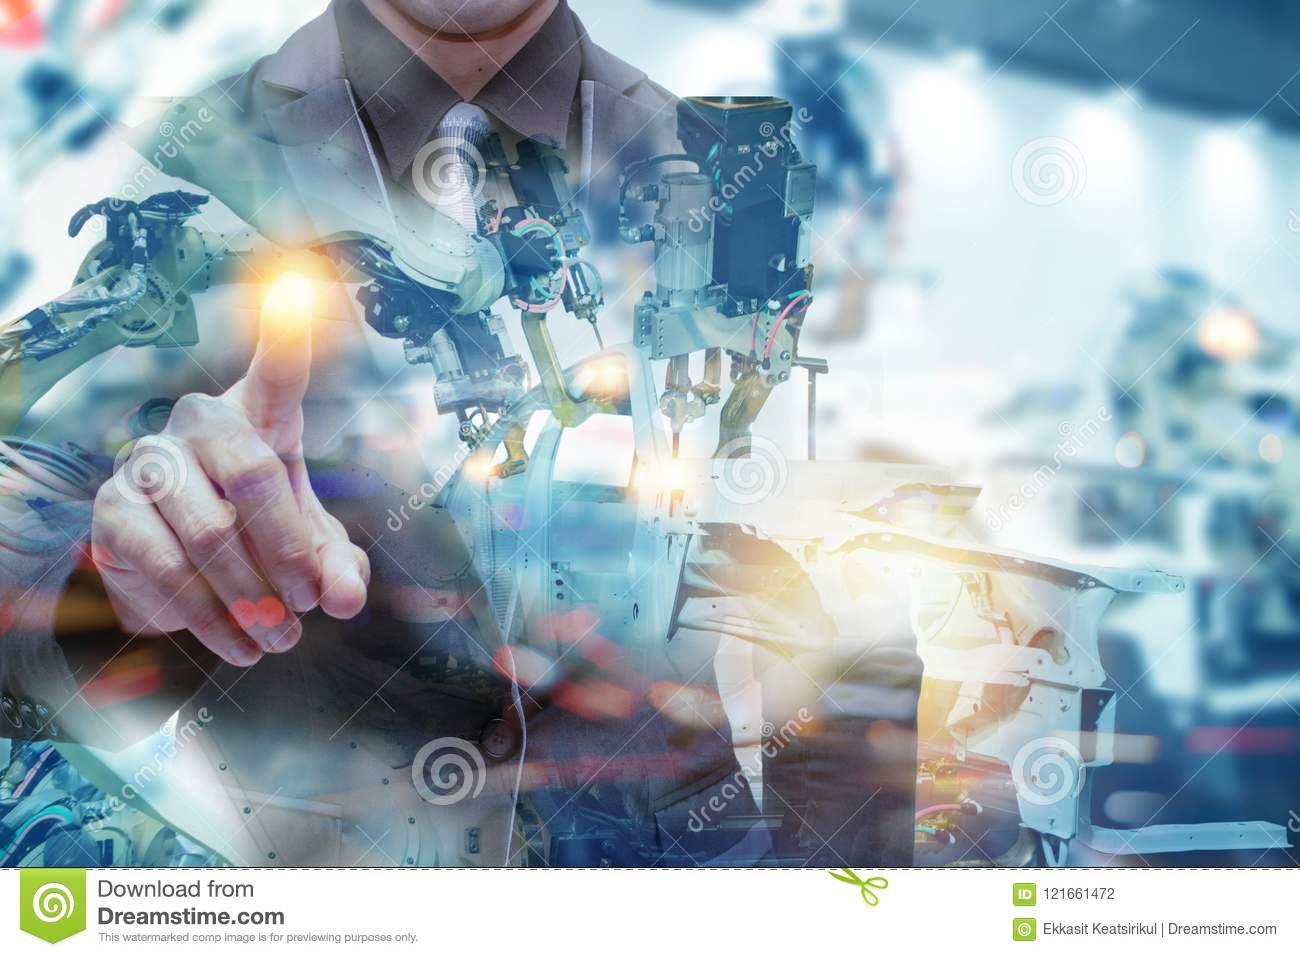 Iot smart factory , industry 4.0 technology concept, Engineer point hand with robot in automation factory background with fake sun